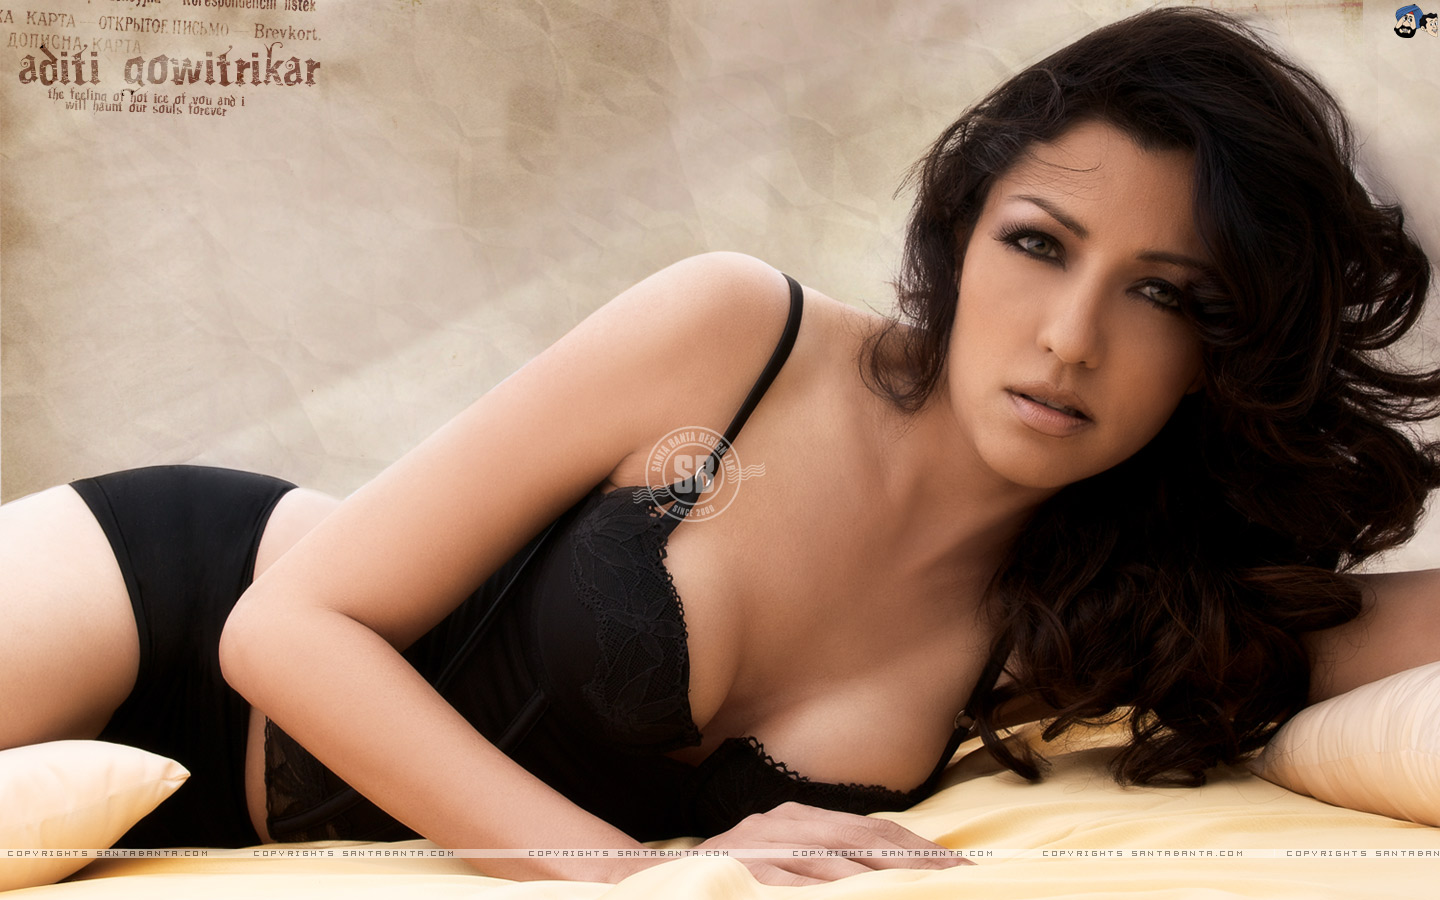 mnurux: aditi govitrikar indian actress wallpapers, high quality